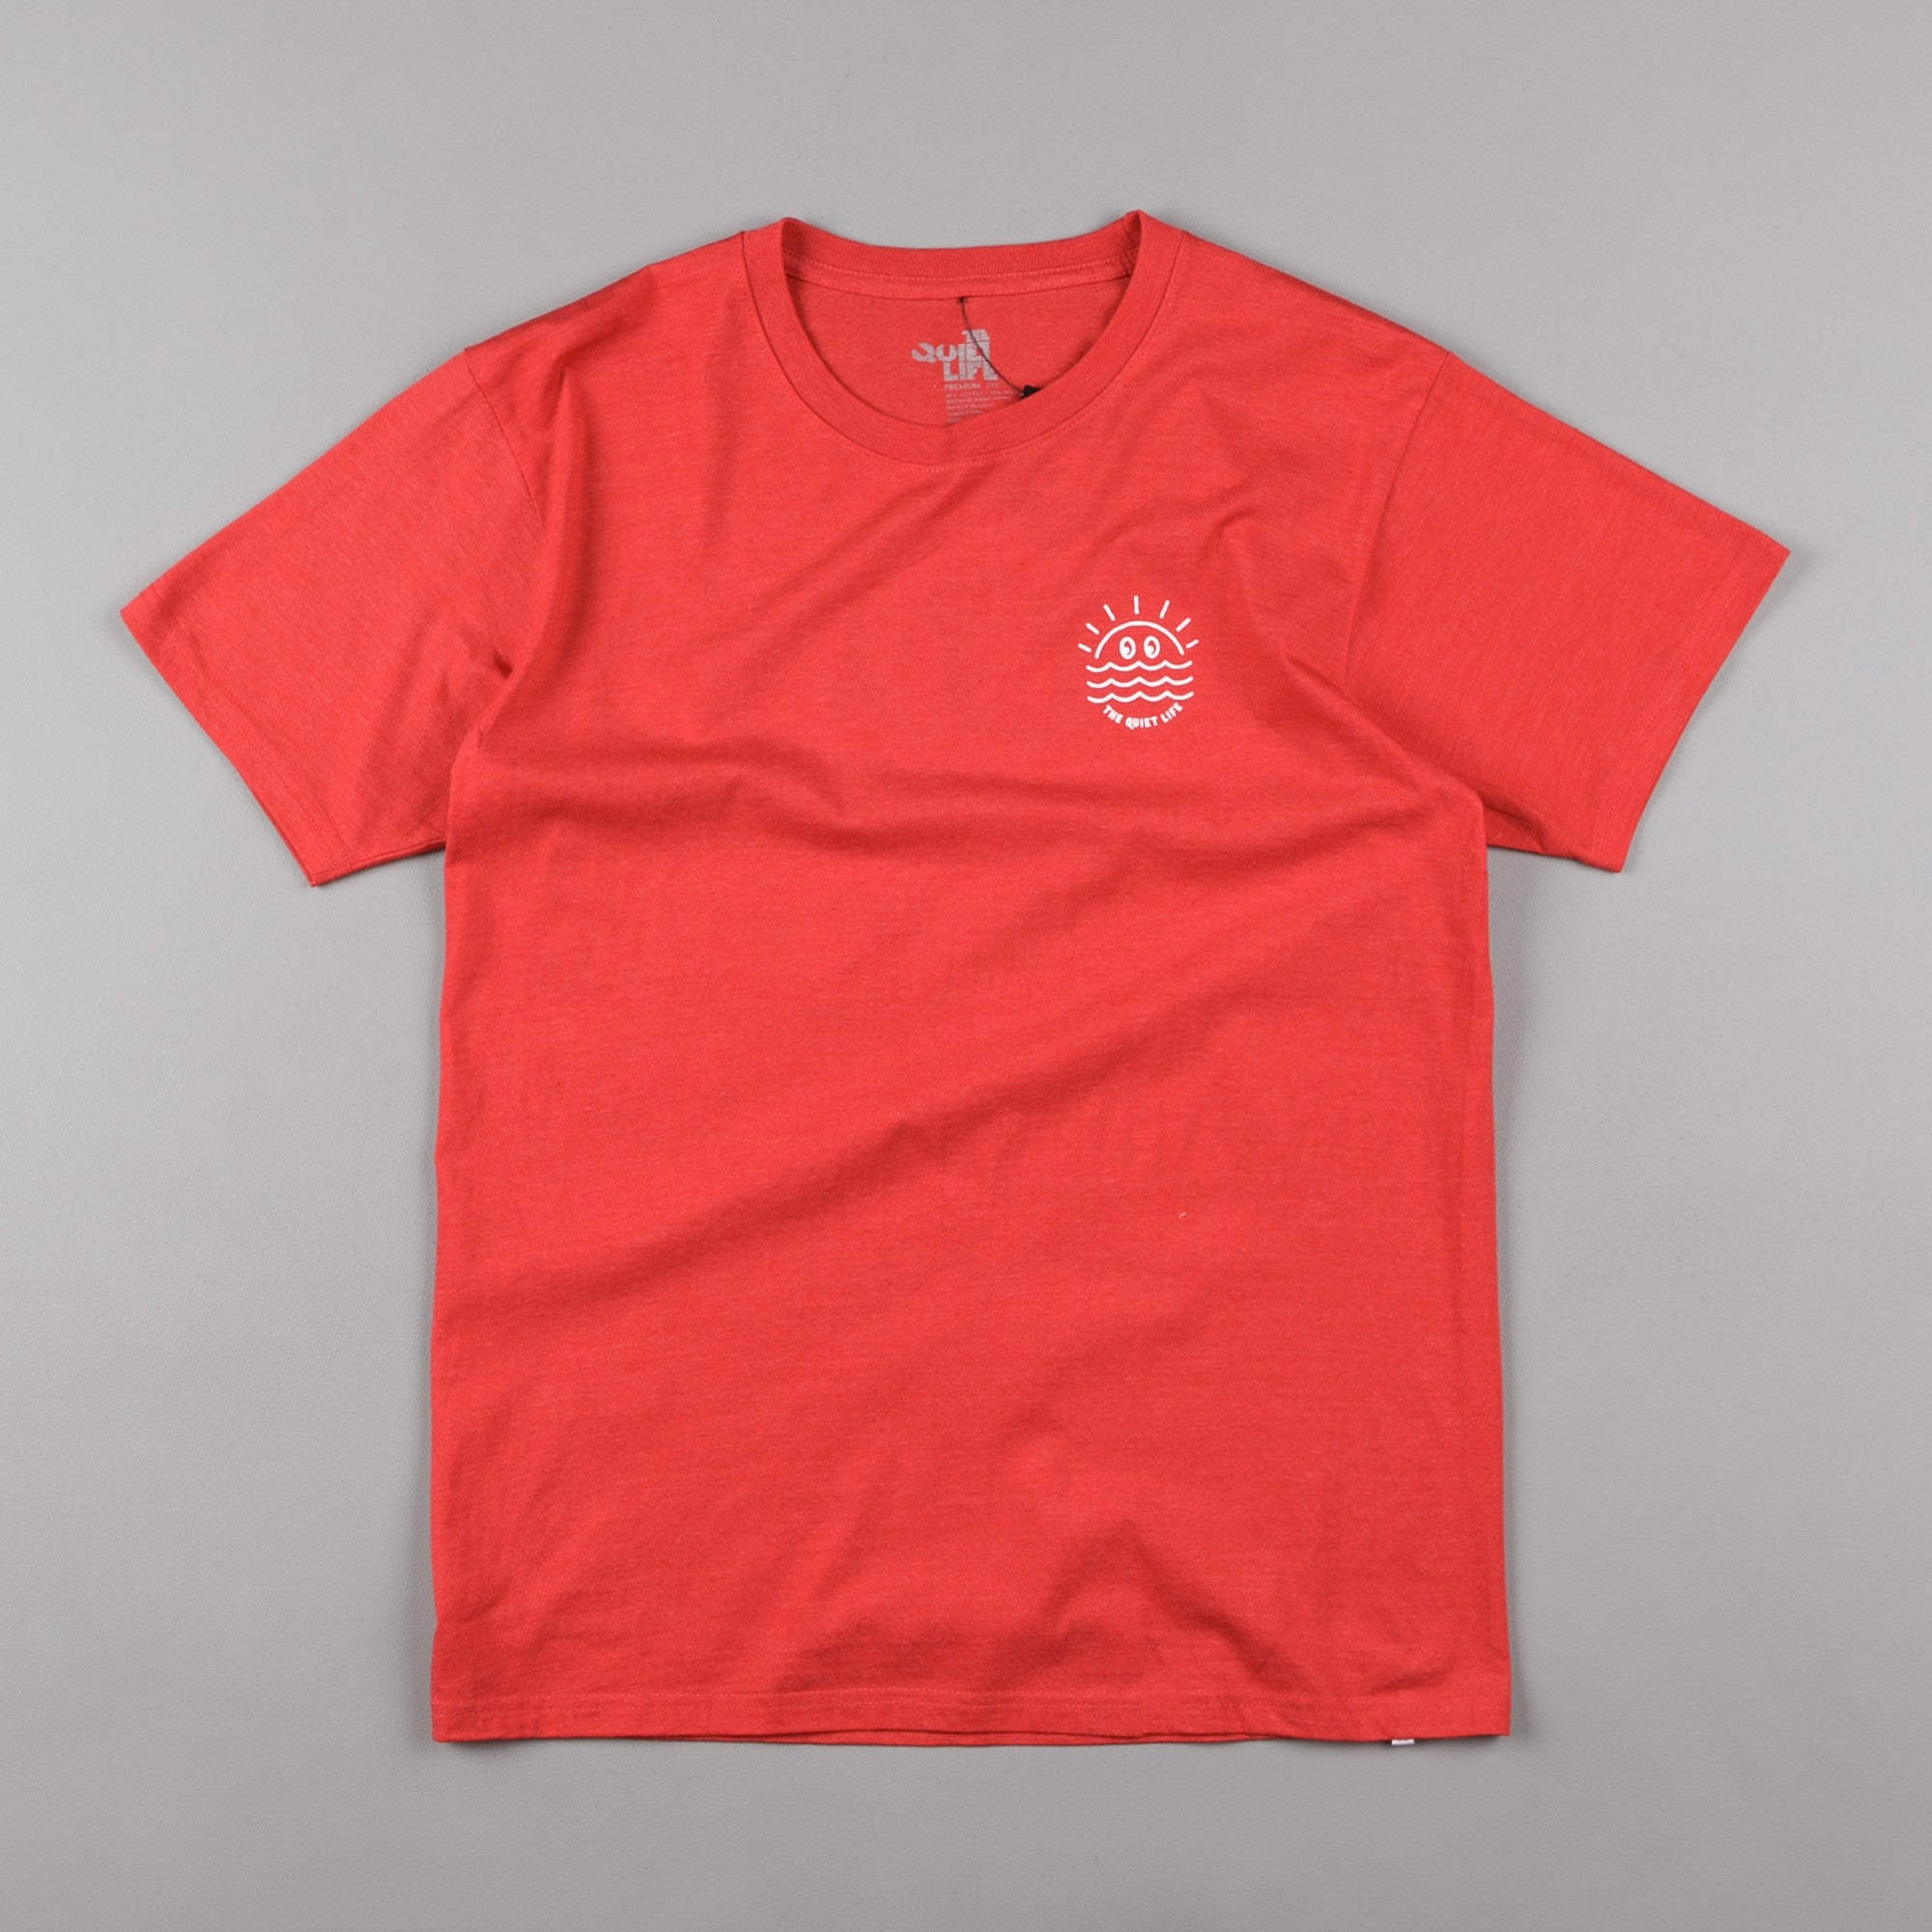 The Quiet Life Sunny Premium T-Shirt - Heather Orange